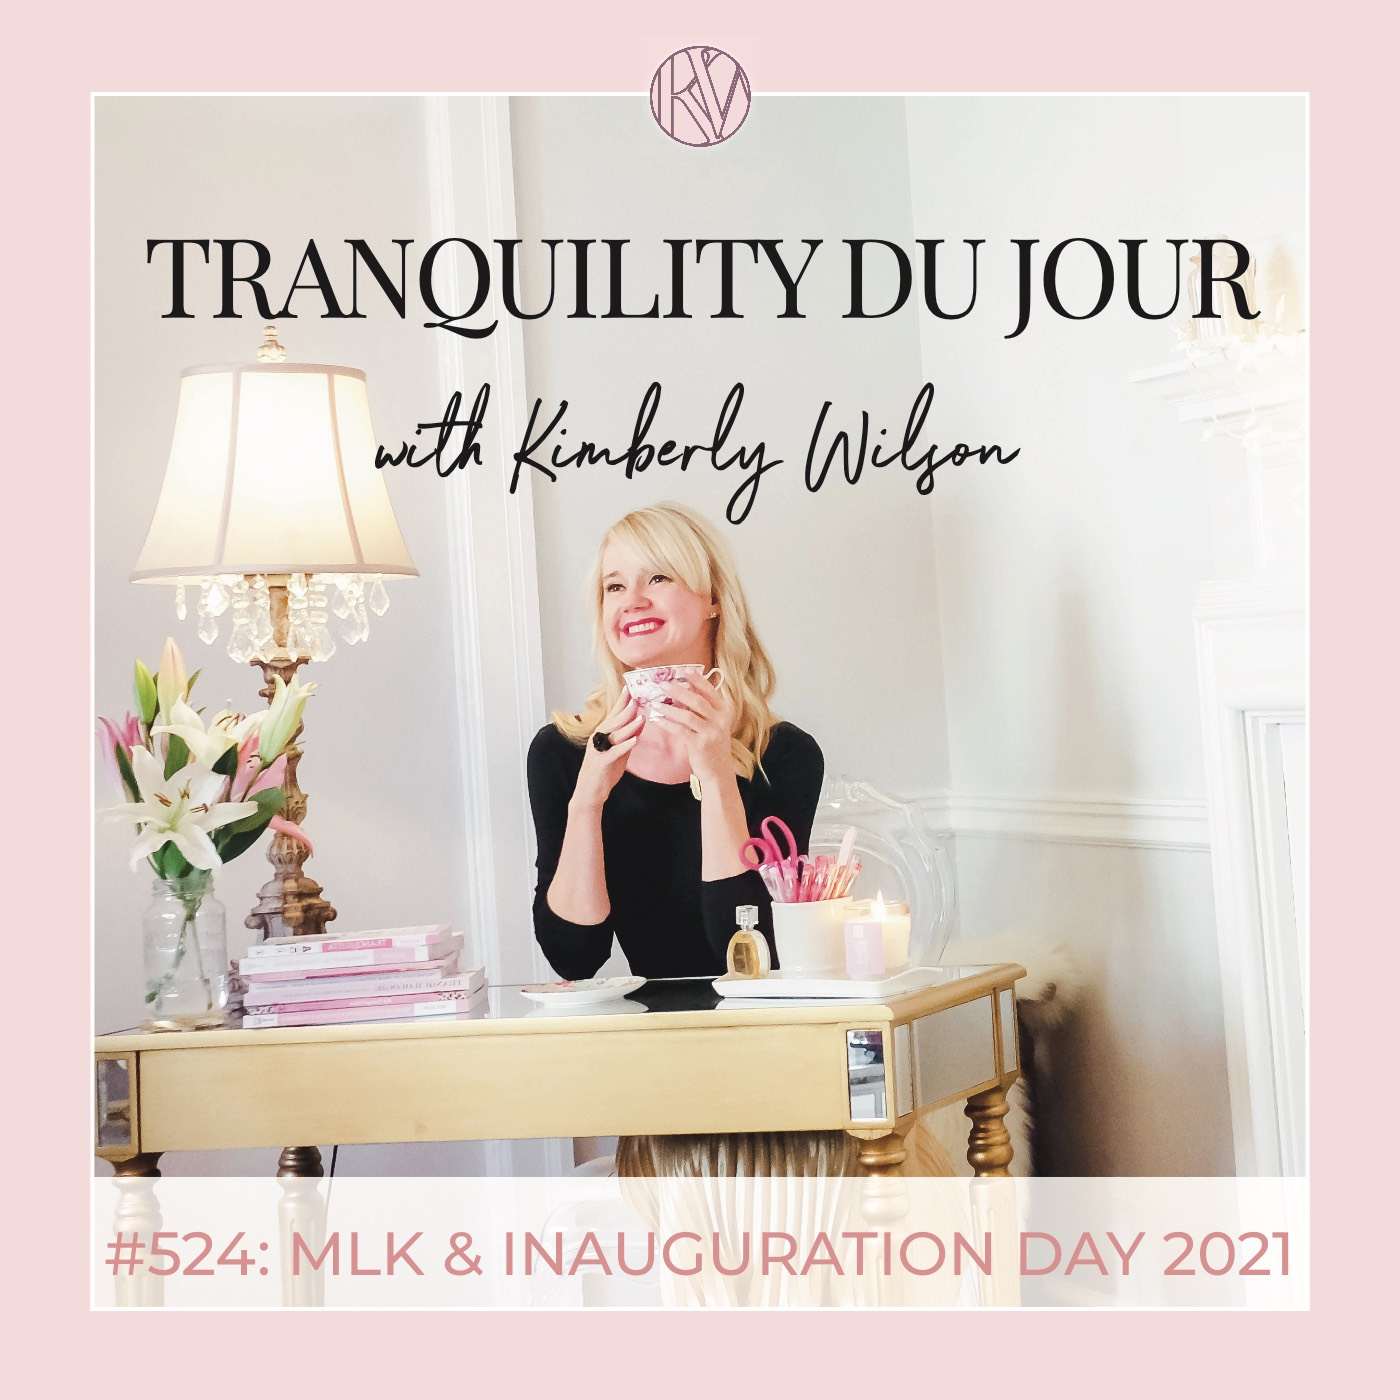 Tranquility du Jour #524: MLK & Inauguration Day 2021